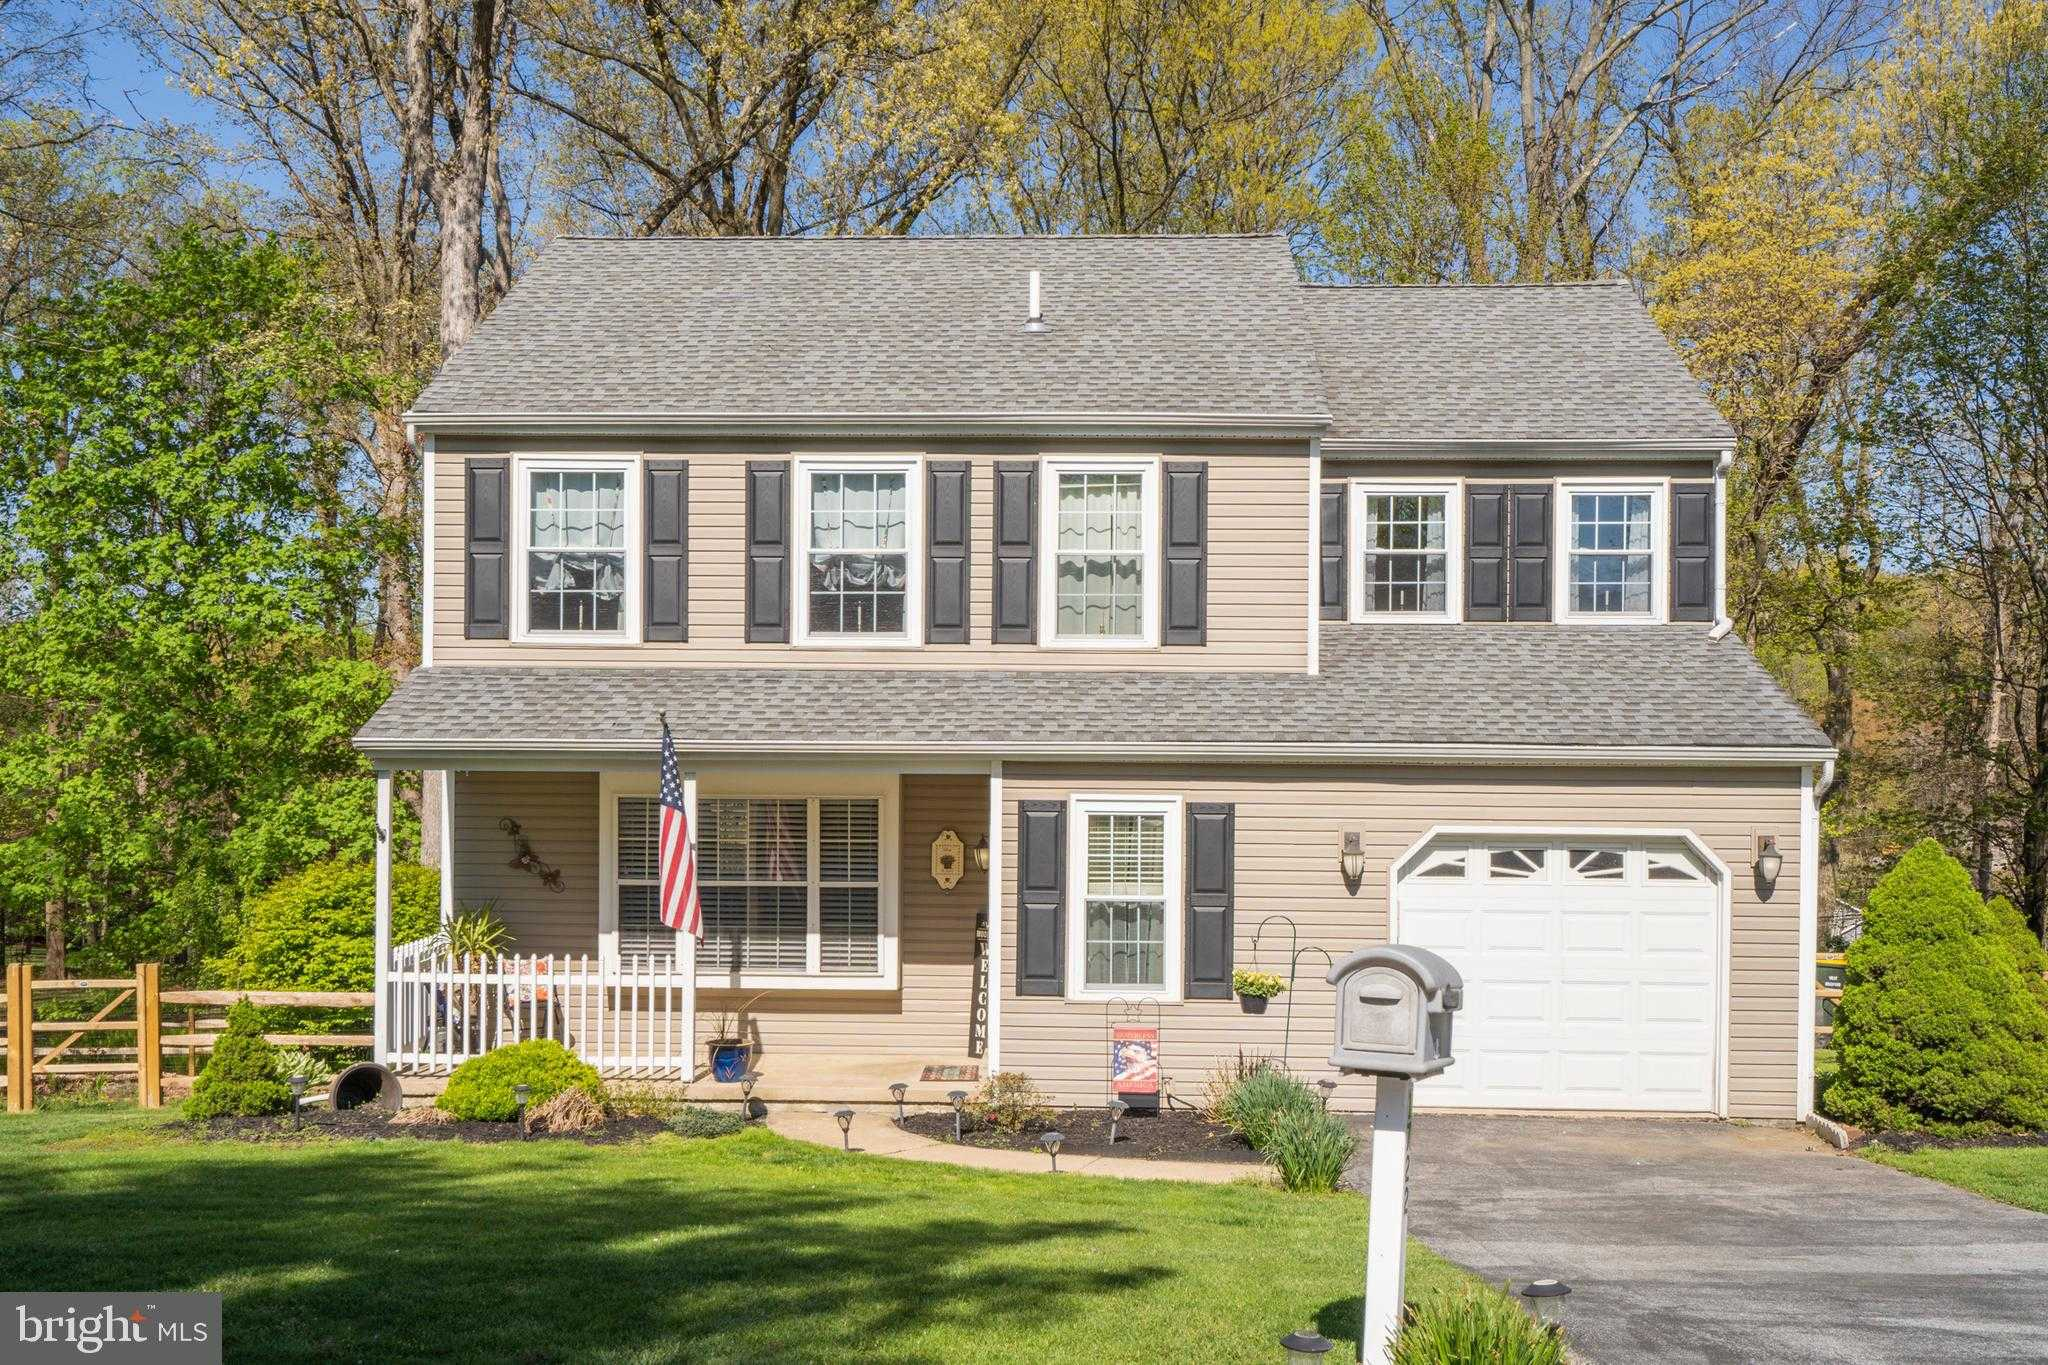 $399,000 - 4Br/3Ba -  for Sale in Victoria Crossing, Downingtown